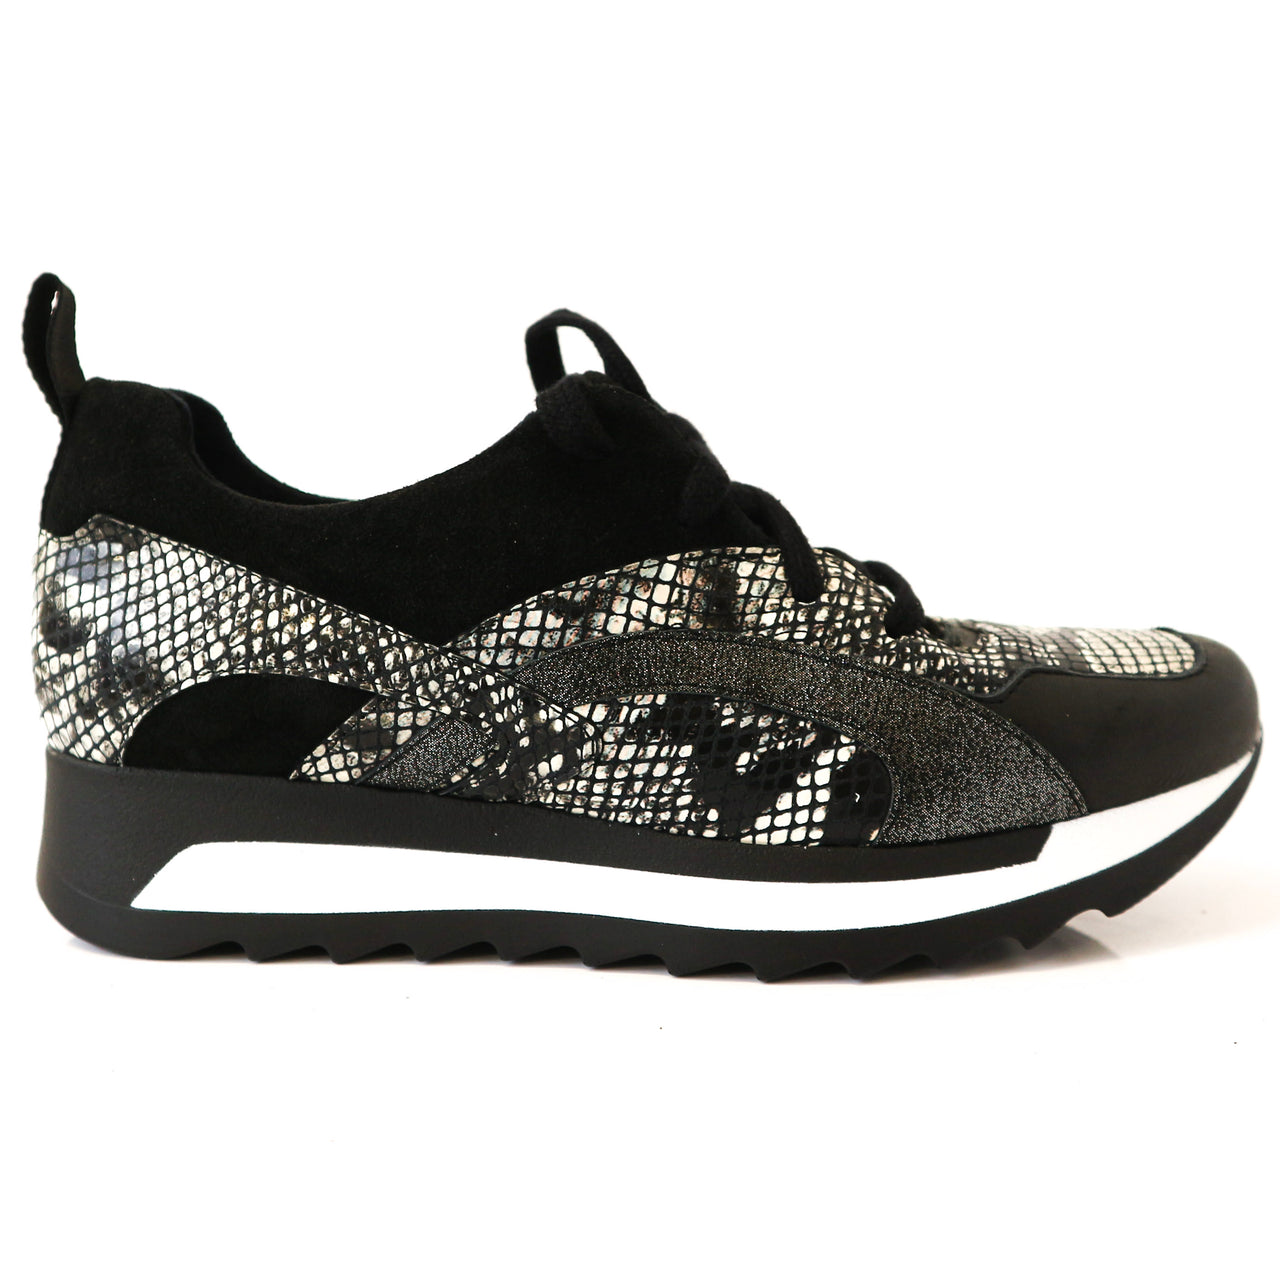 CRUZ | ANIMAL PRINT RUNNERS - TrystShoes